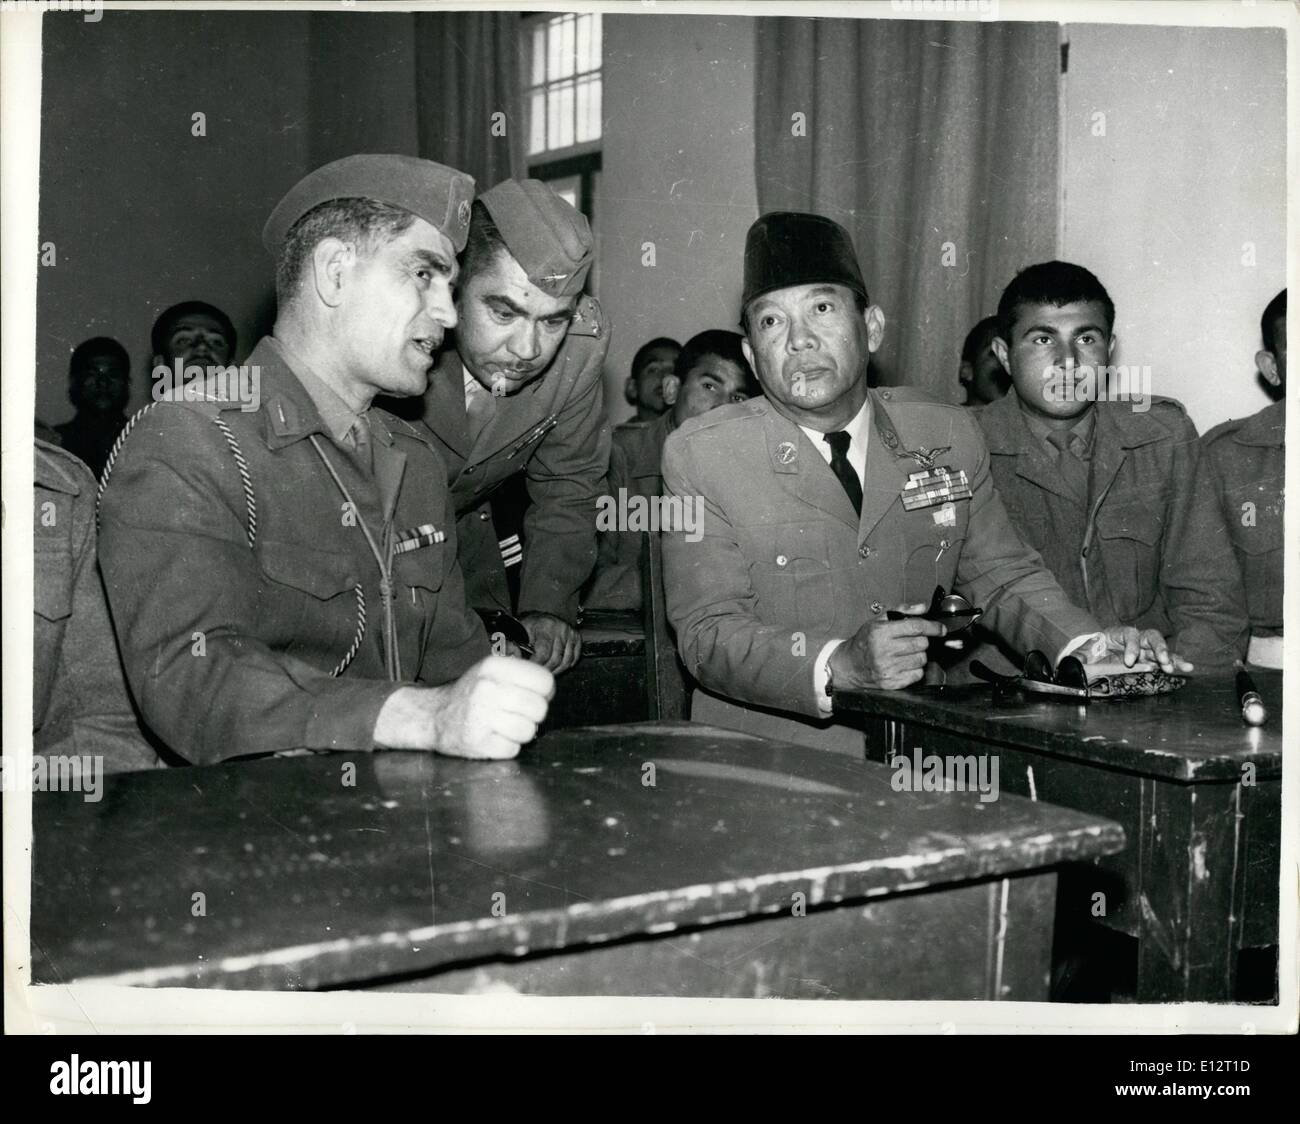 Feb. 24, 2012 - Two Men with Peace or War on Their Minds This Weekend Seated together in an Army College in Irak are two dictators of this troublous age. General Kassem of Irak, whose ambition and declared aim is the conquest of oil rich British protected Kuwait, and President Sukarno of Indonesia who has just announced that Western Irian (as he call the remaining part of the former Dutch East Indies empire) is his and will if necessary be taken by his forces. This hitherto unpublished picture was taken when the two heads of state met in the Iraki capital. - Stock Image